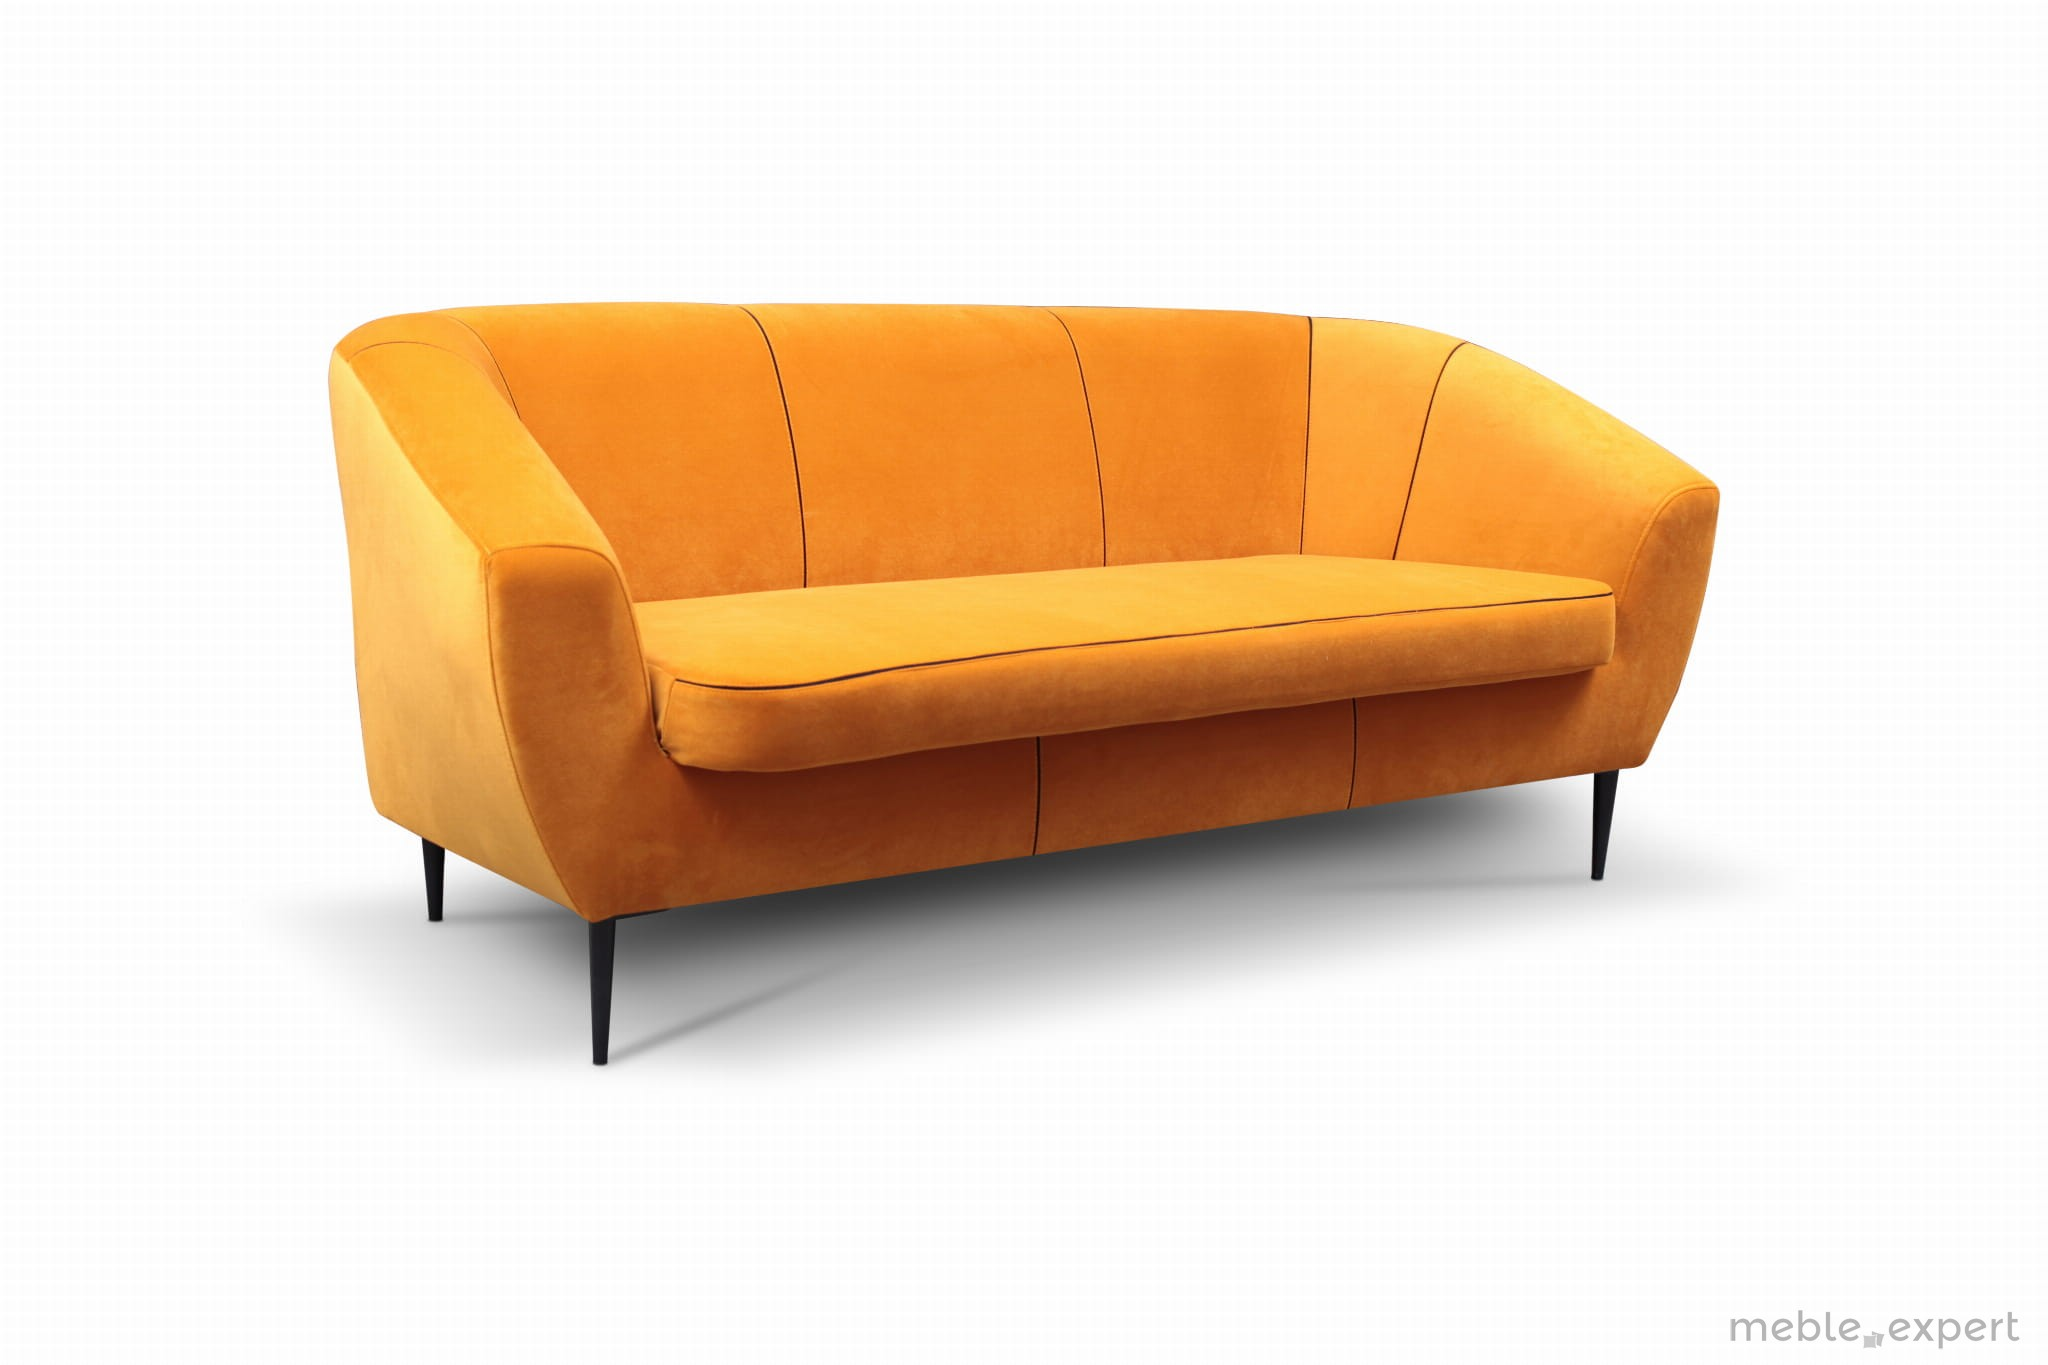 Sofa Revo Meble.Expert